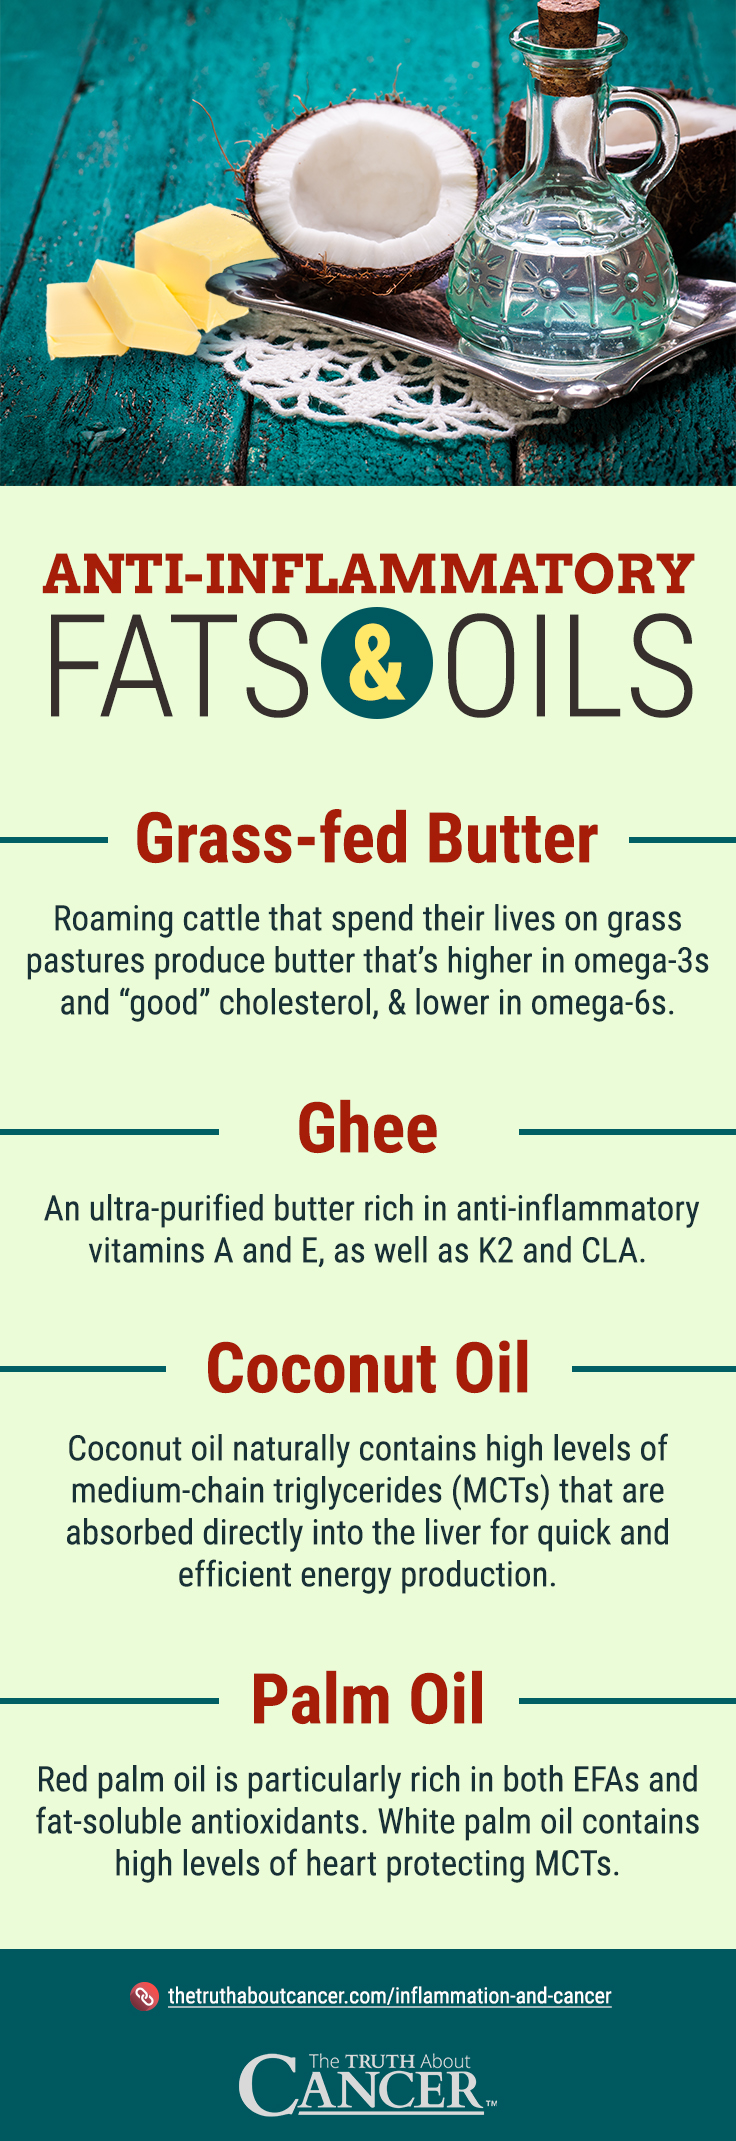 Anti-Inflammatory Fats - Infographic